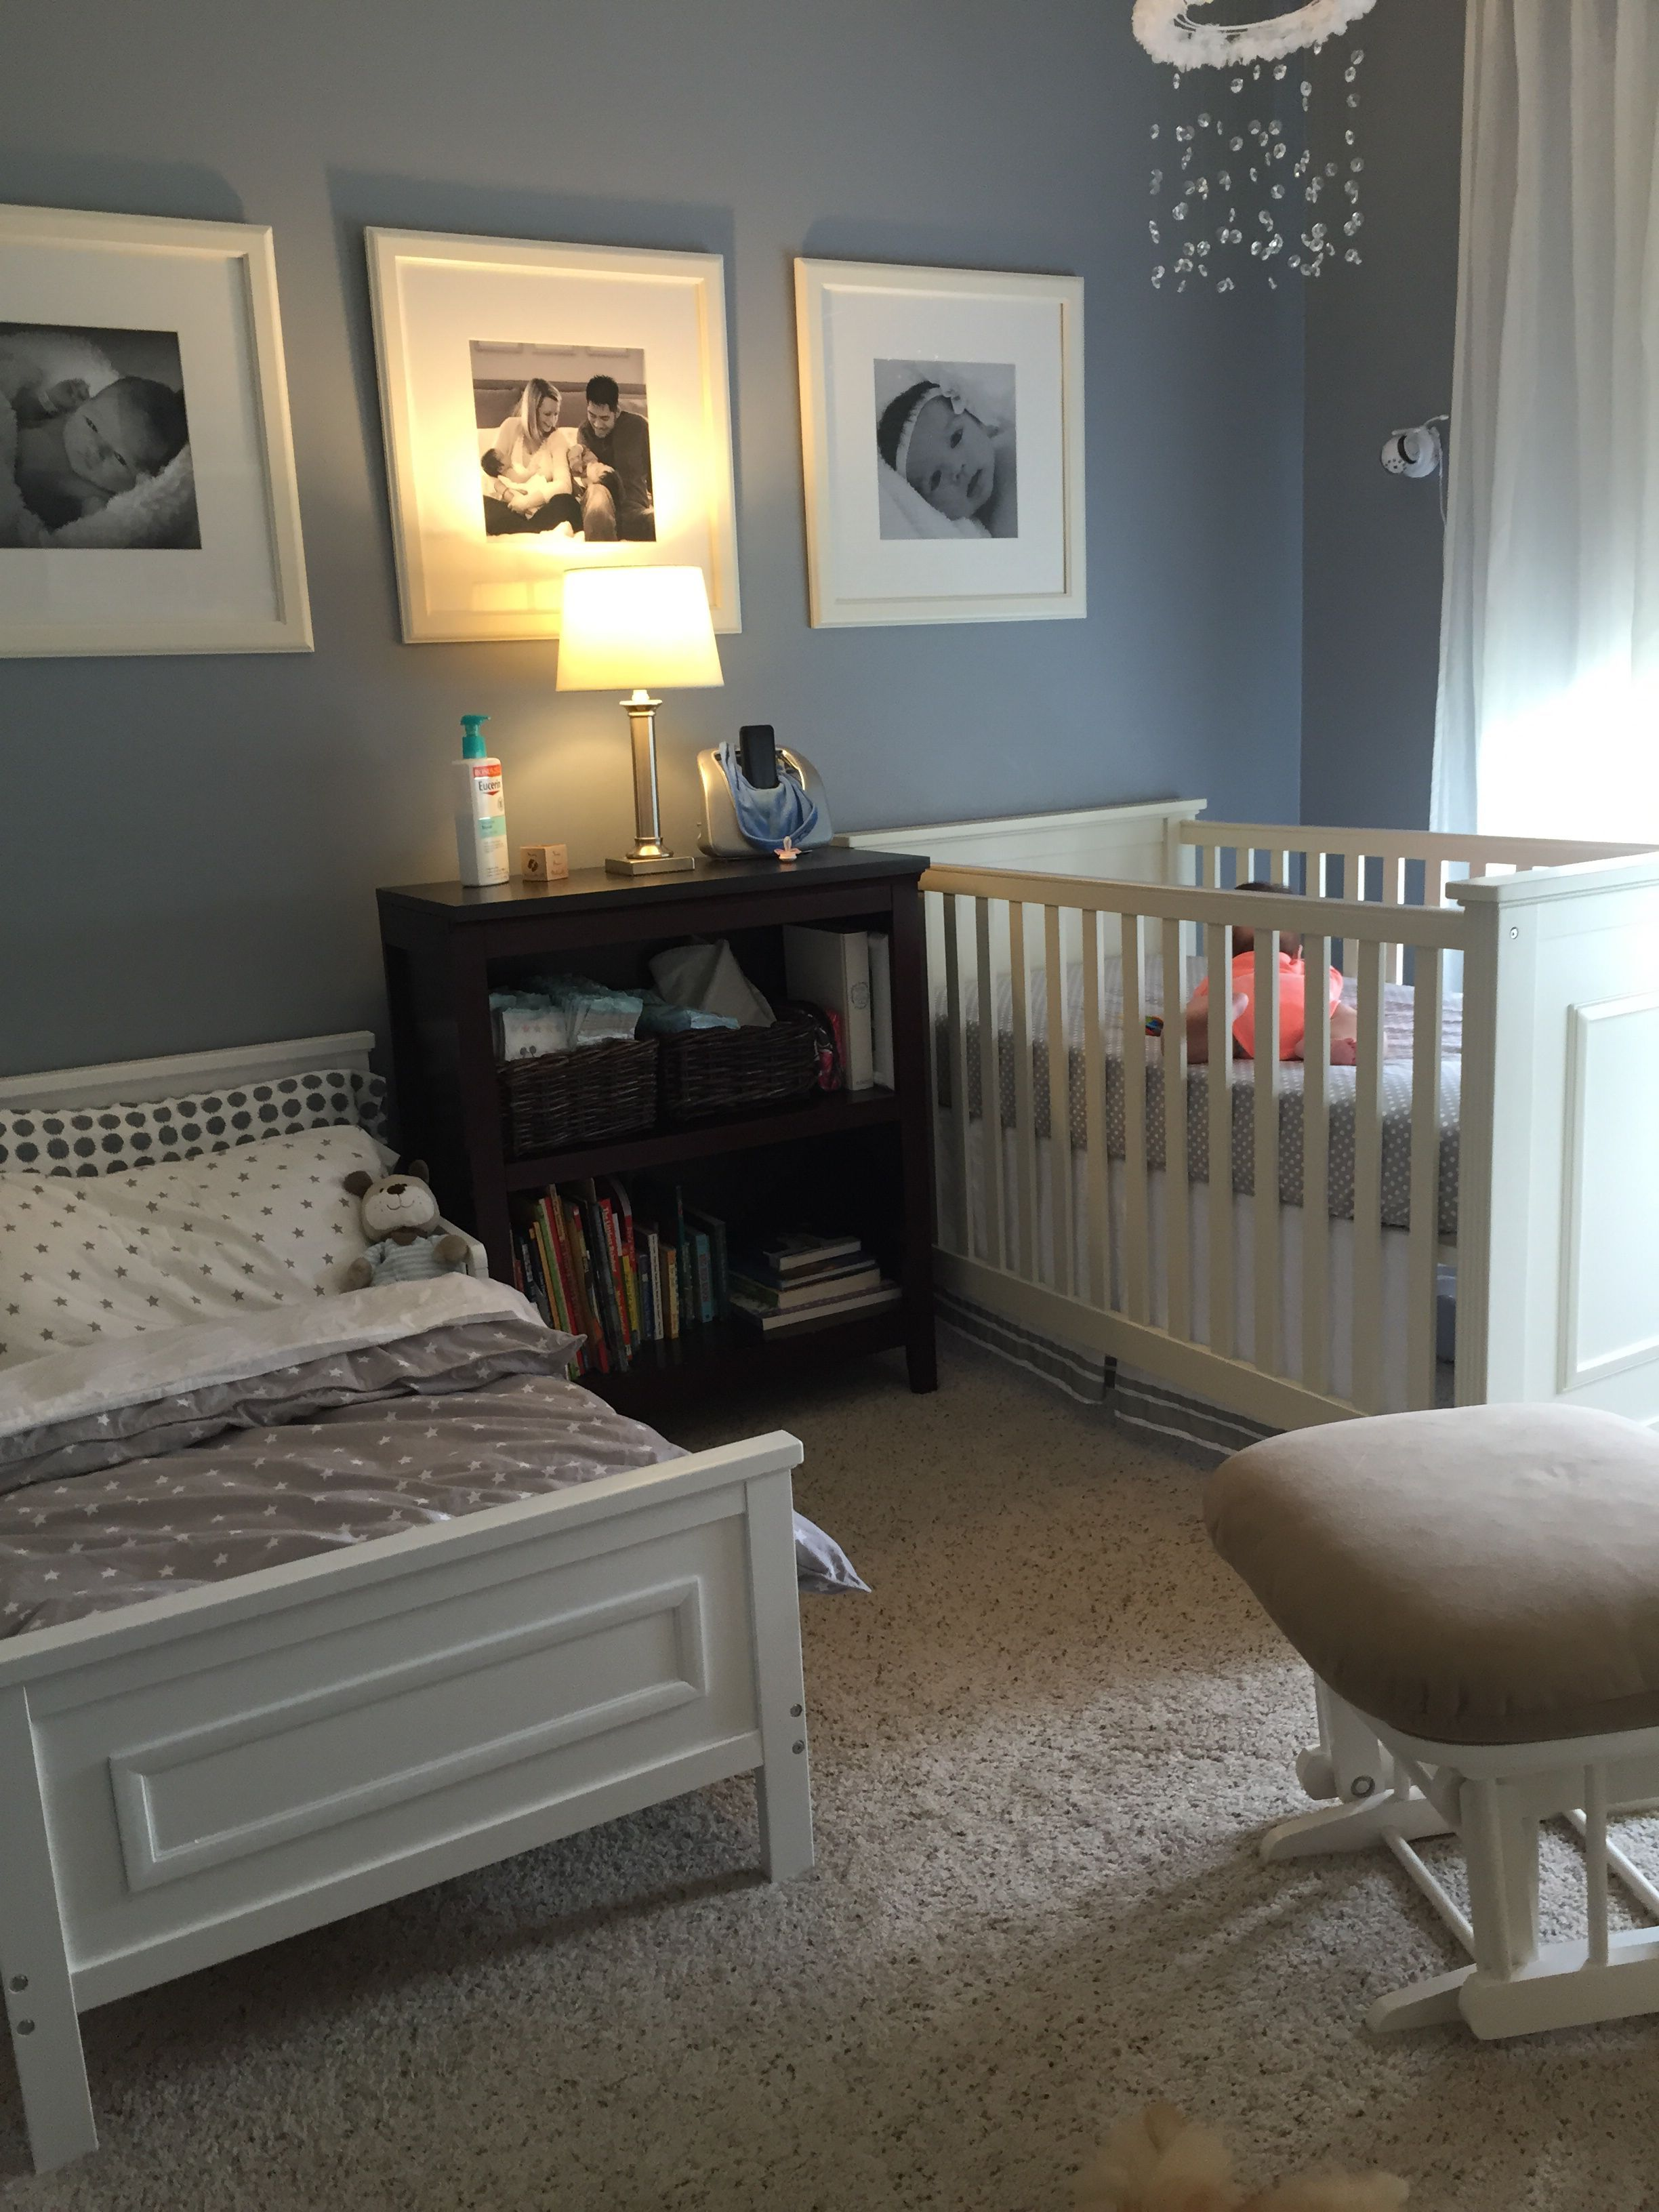 Neutral room for toddler boy and baby girl boy and girl - Bedroom ideas for 3 year old boy ...